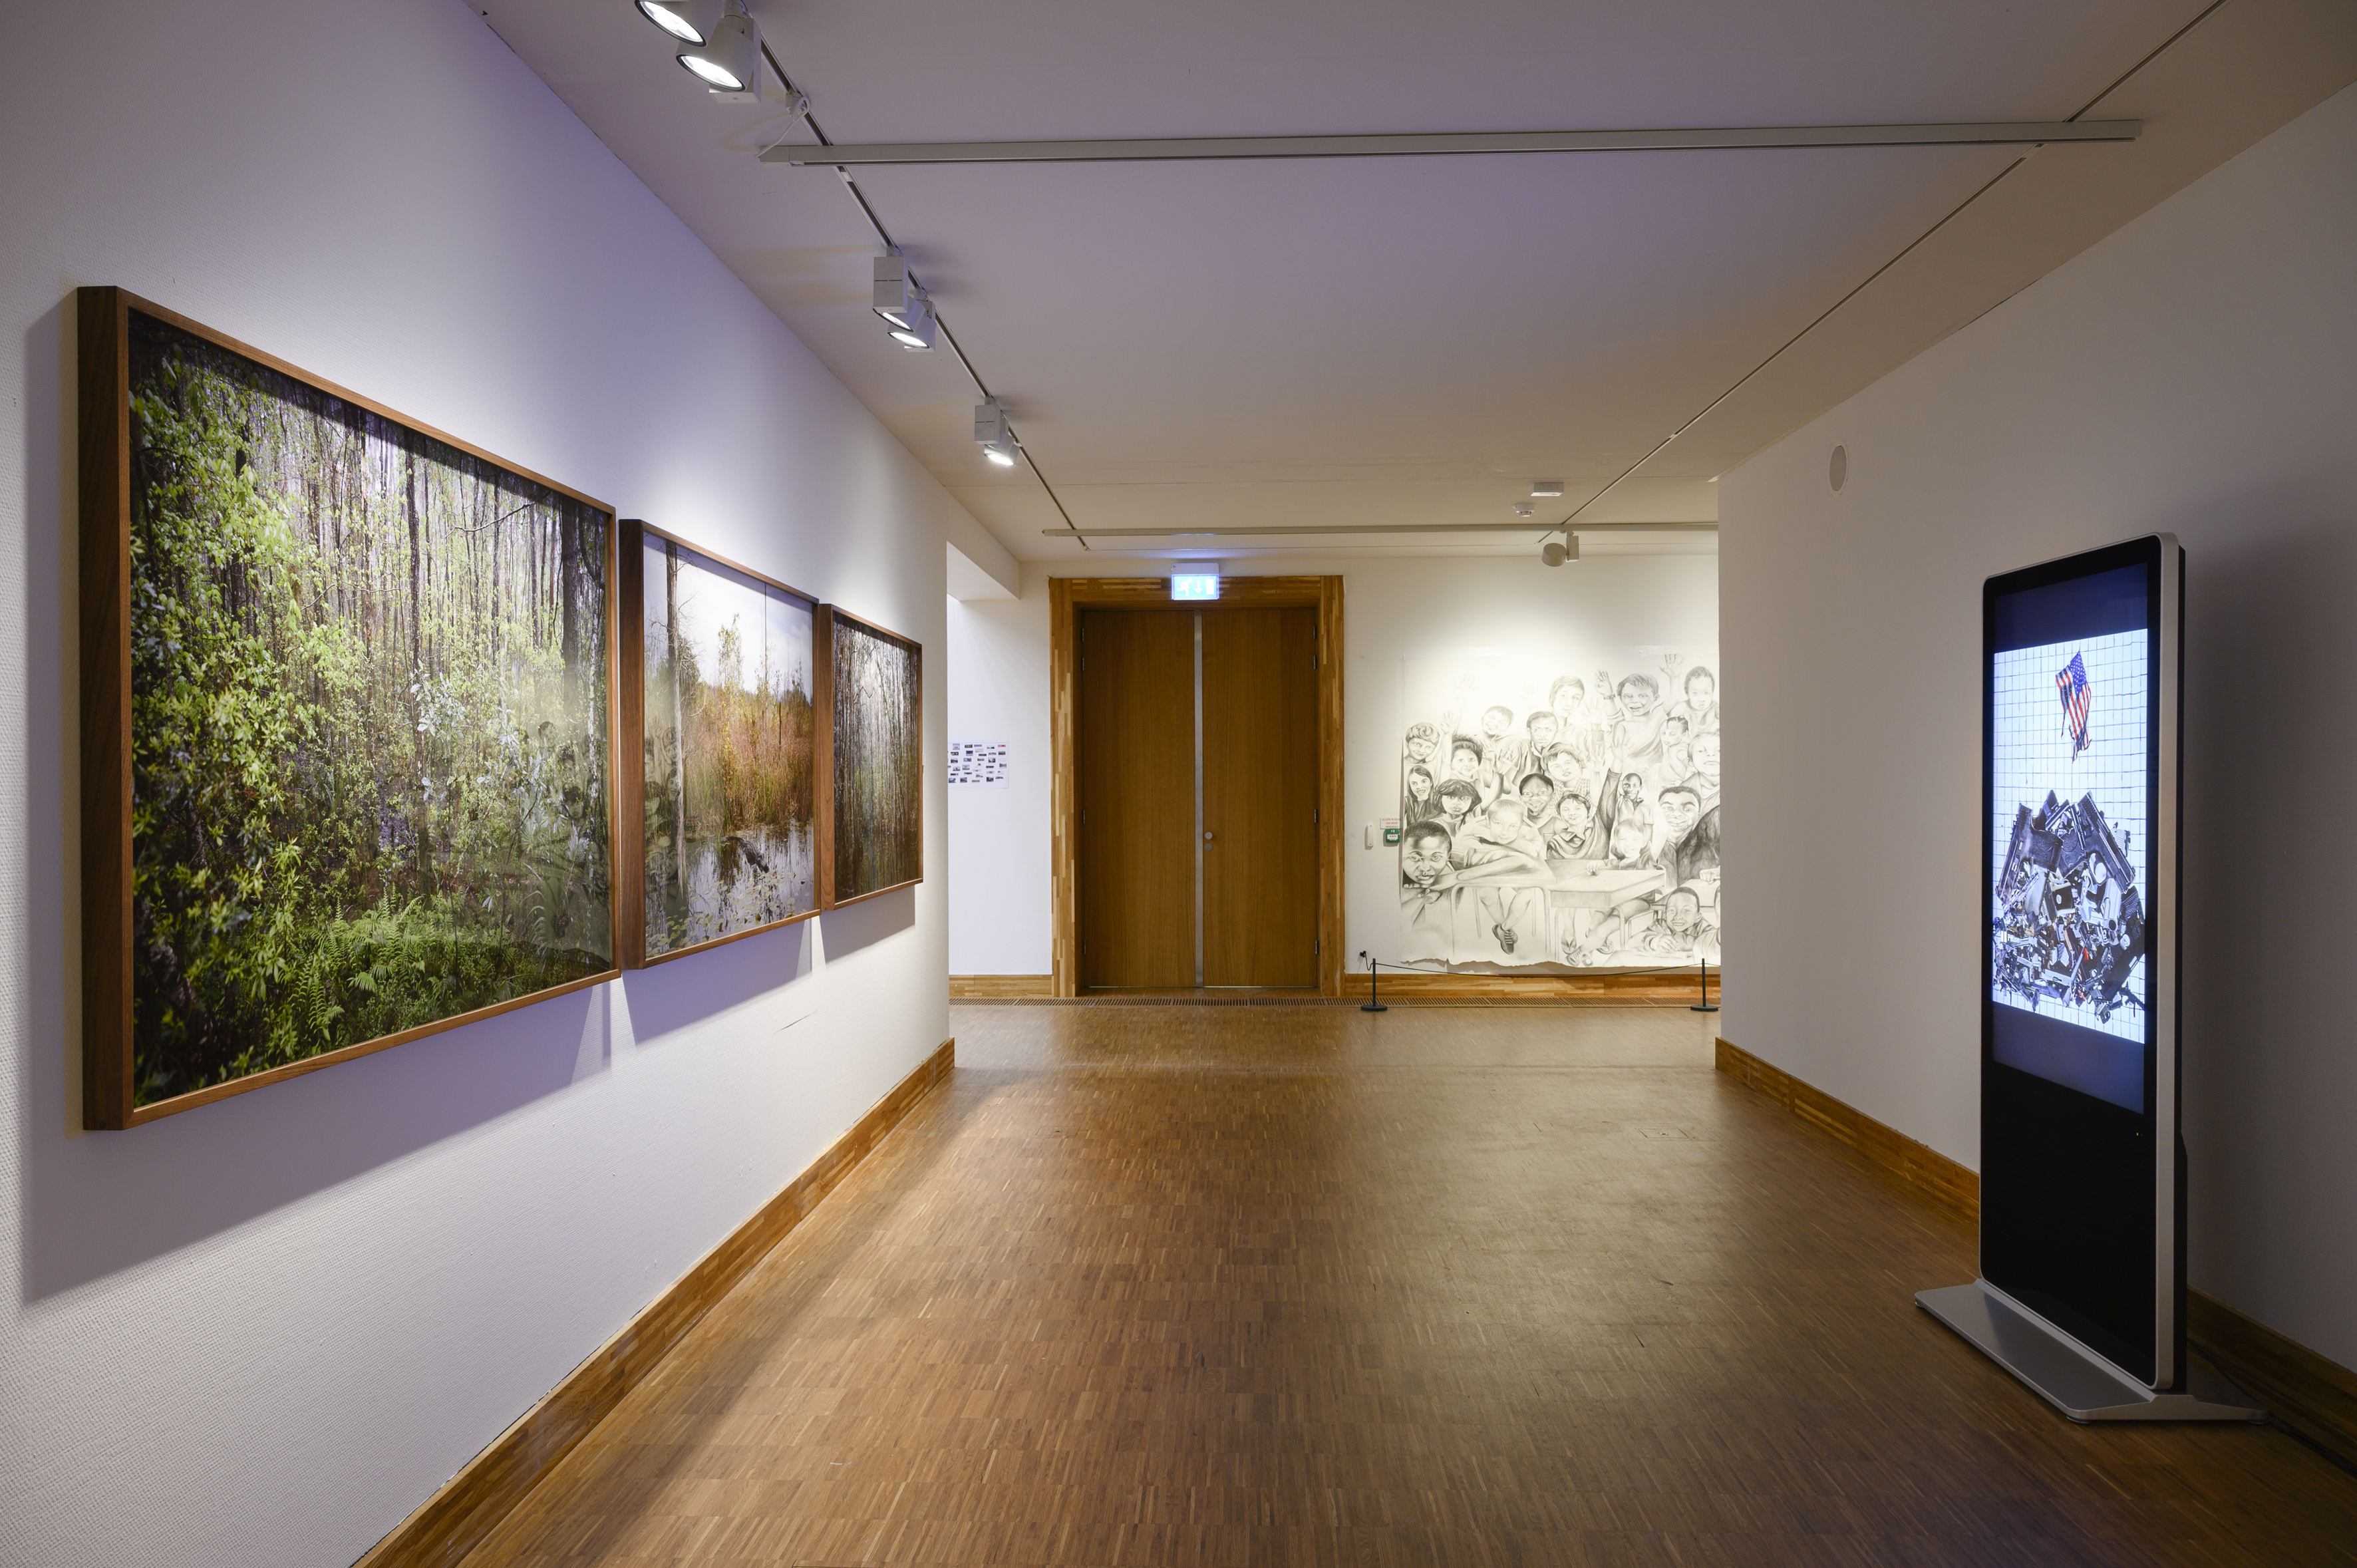 Catherine Opie, Rhetorical Landscapes, Untitles #2, #4, #9 (Swamps), 2019 & Untitled #1, #3, #4 (Political Collage), 2019. Photo Peter Cox for Kunsthal KAdE.jpg